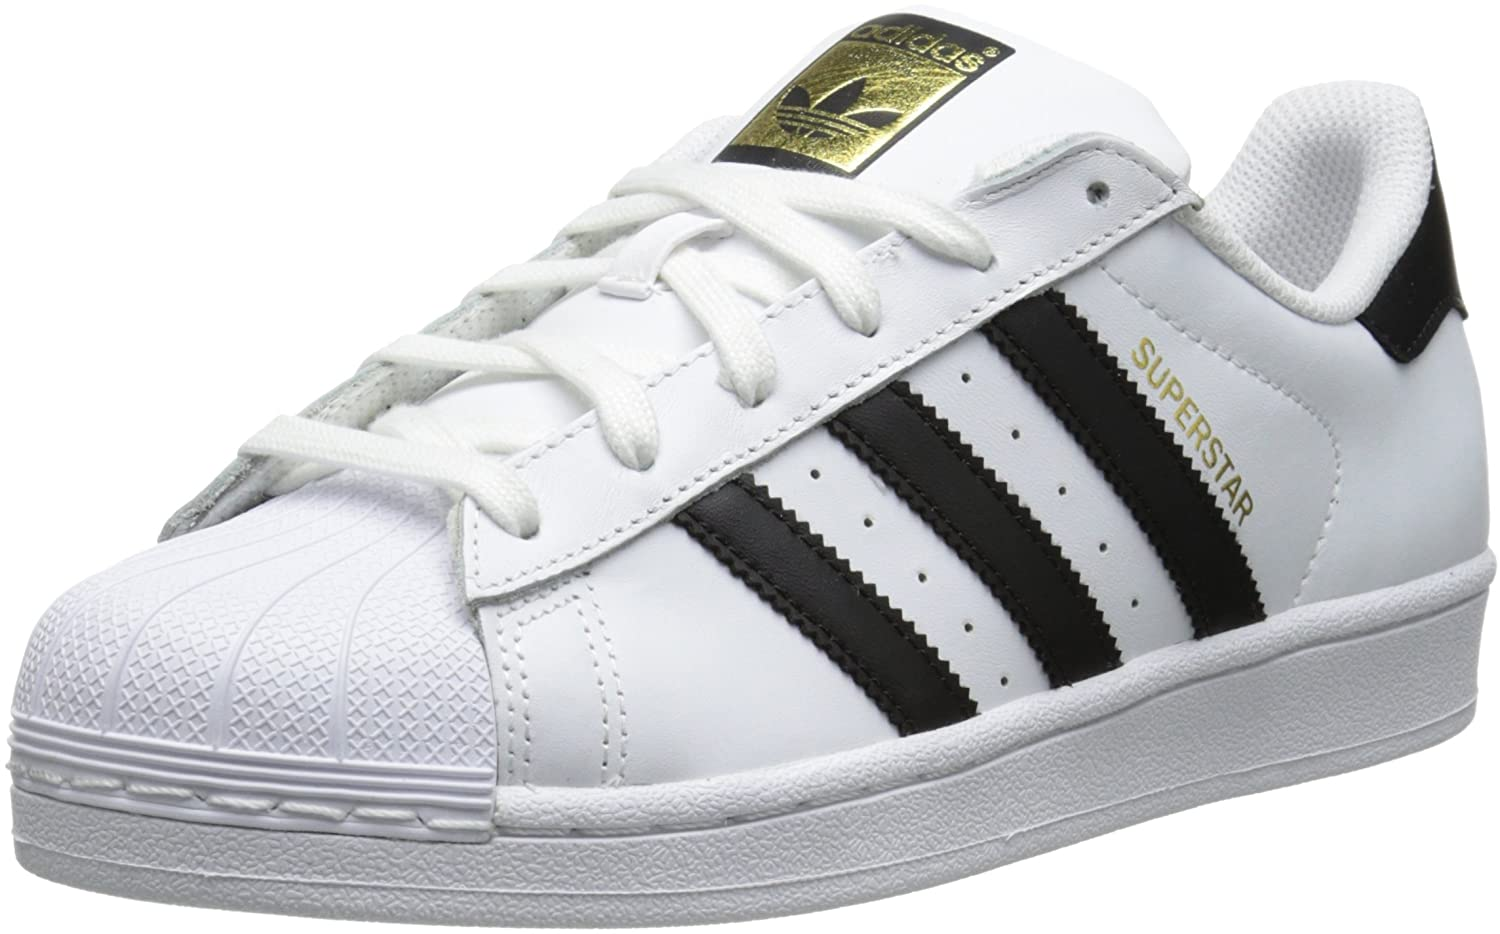 Adidas Superstar Donne In Bianco E Nero ylasr